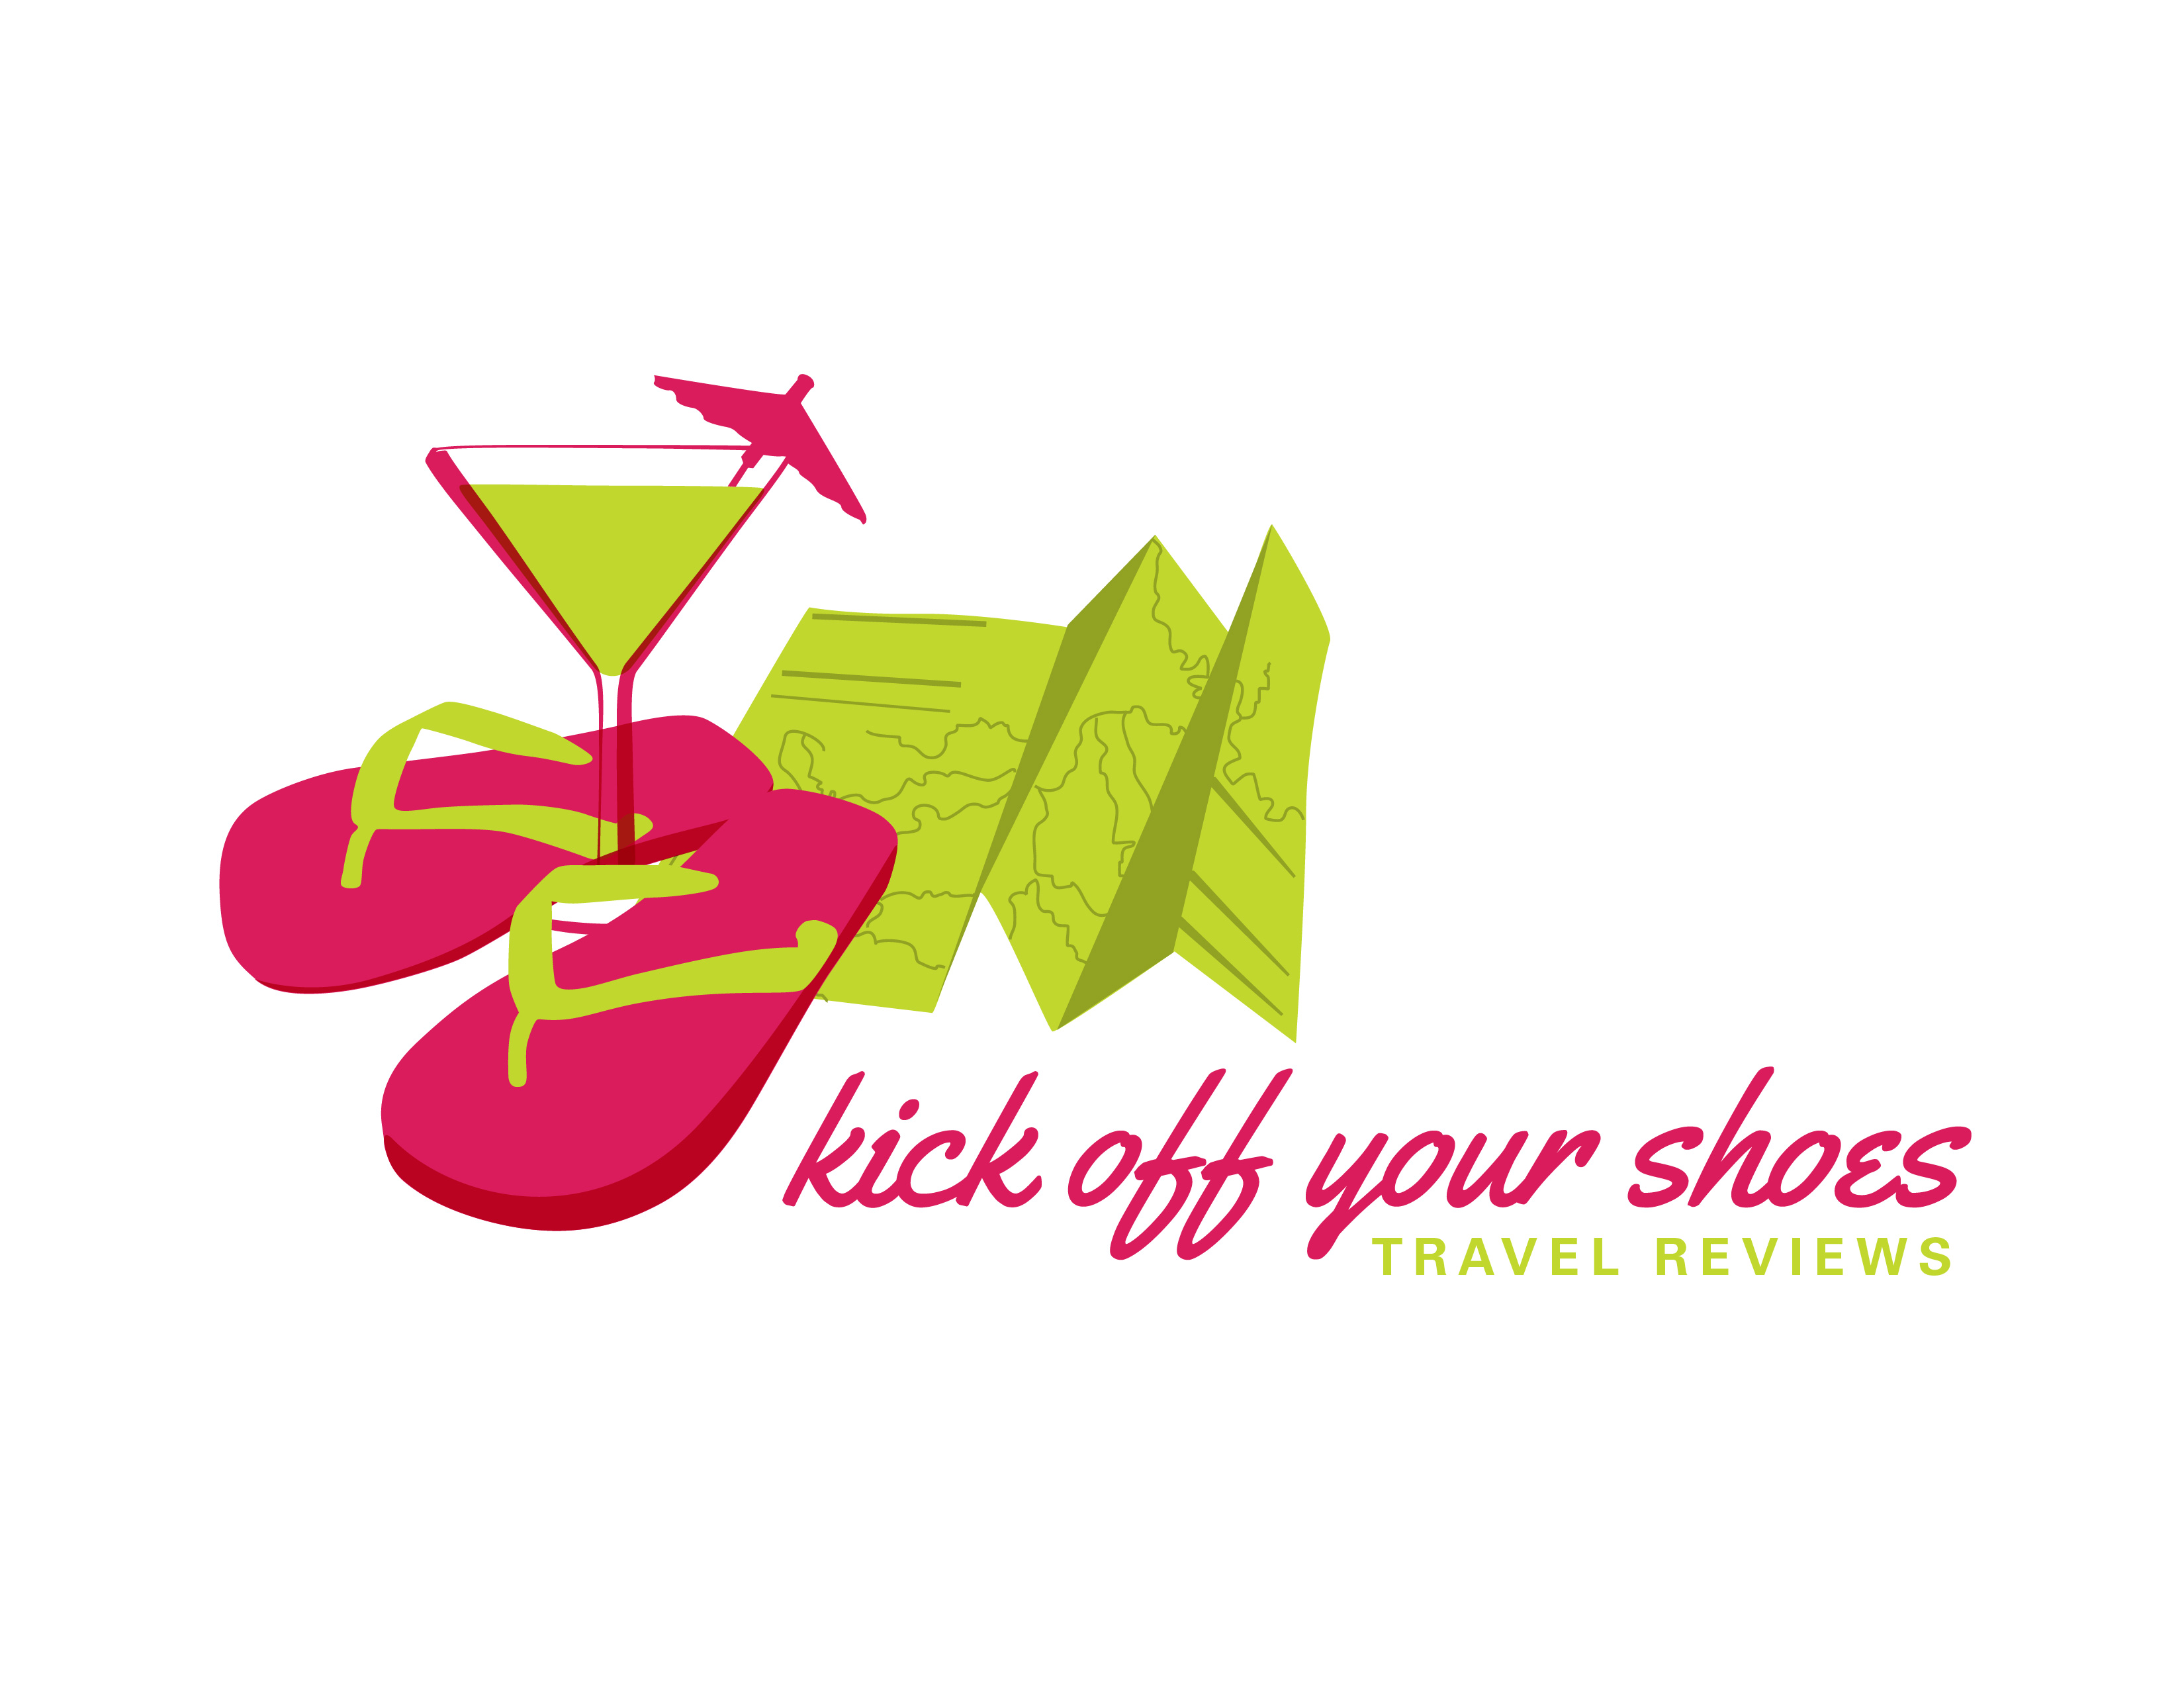 Logo Design by Greg Estep - Entry No. 50 in the Logo Design Contest New Logo Design for Kick Off Your Shoes.